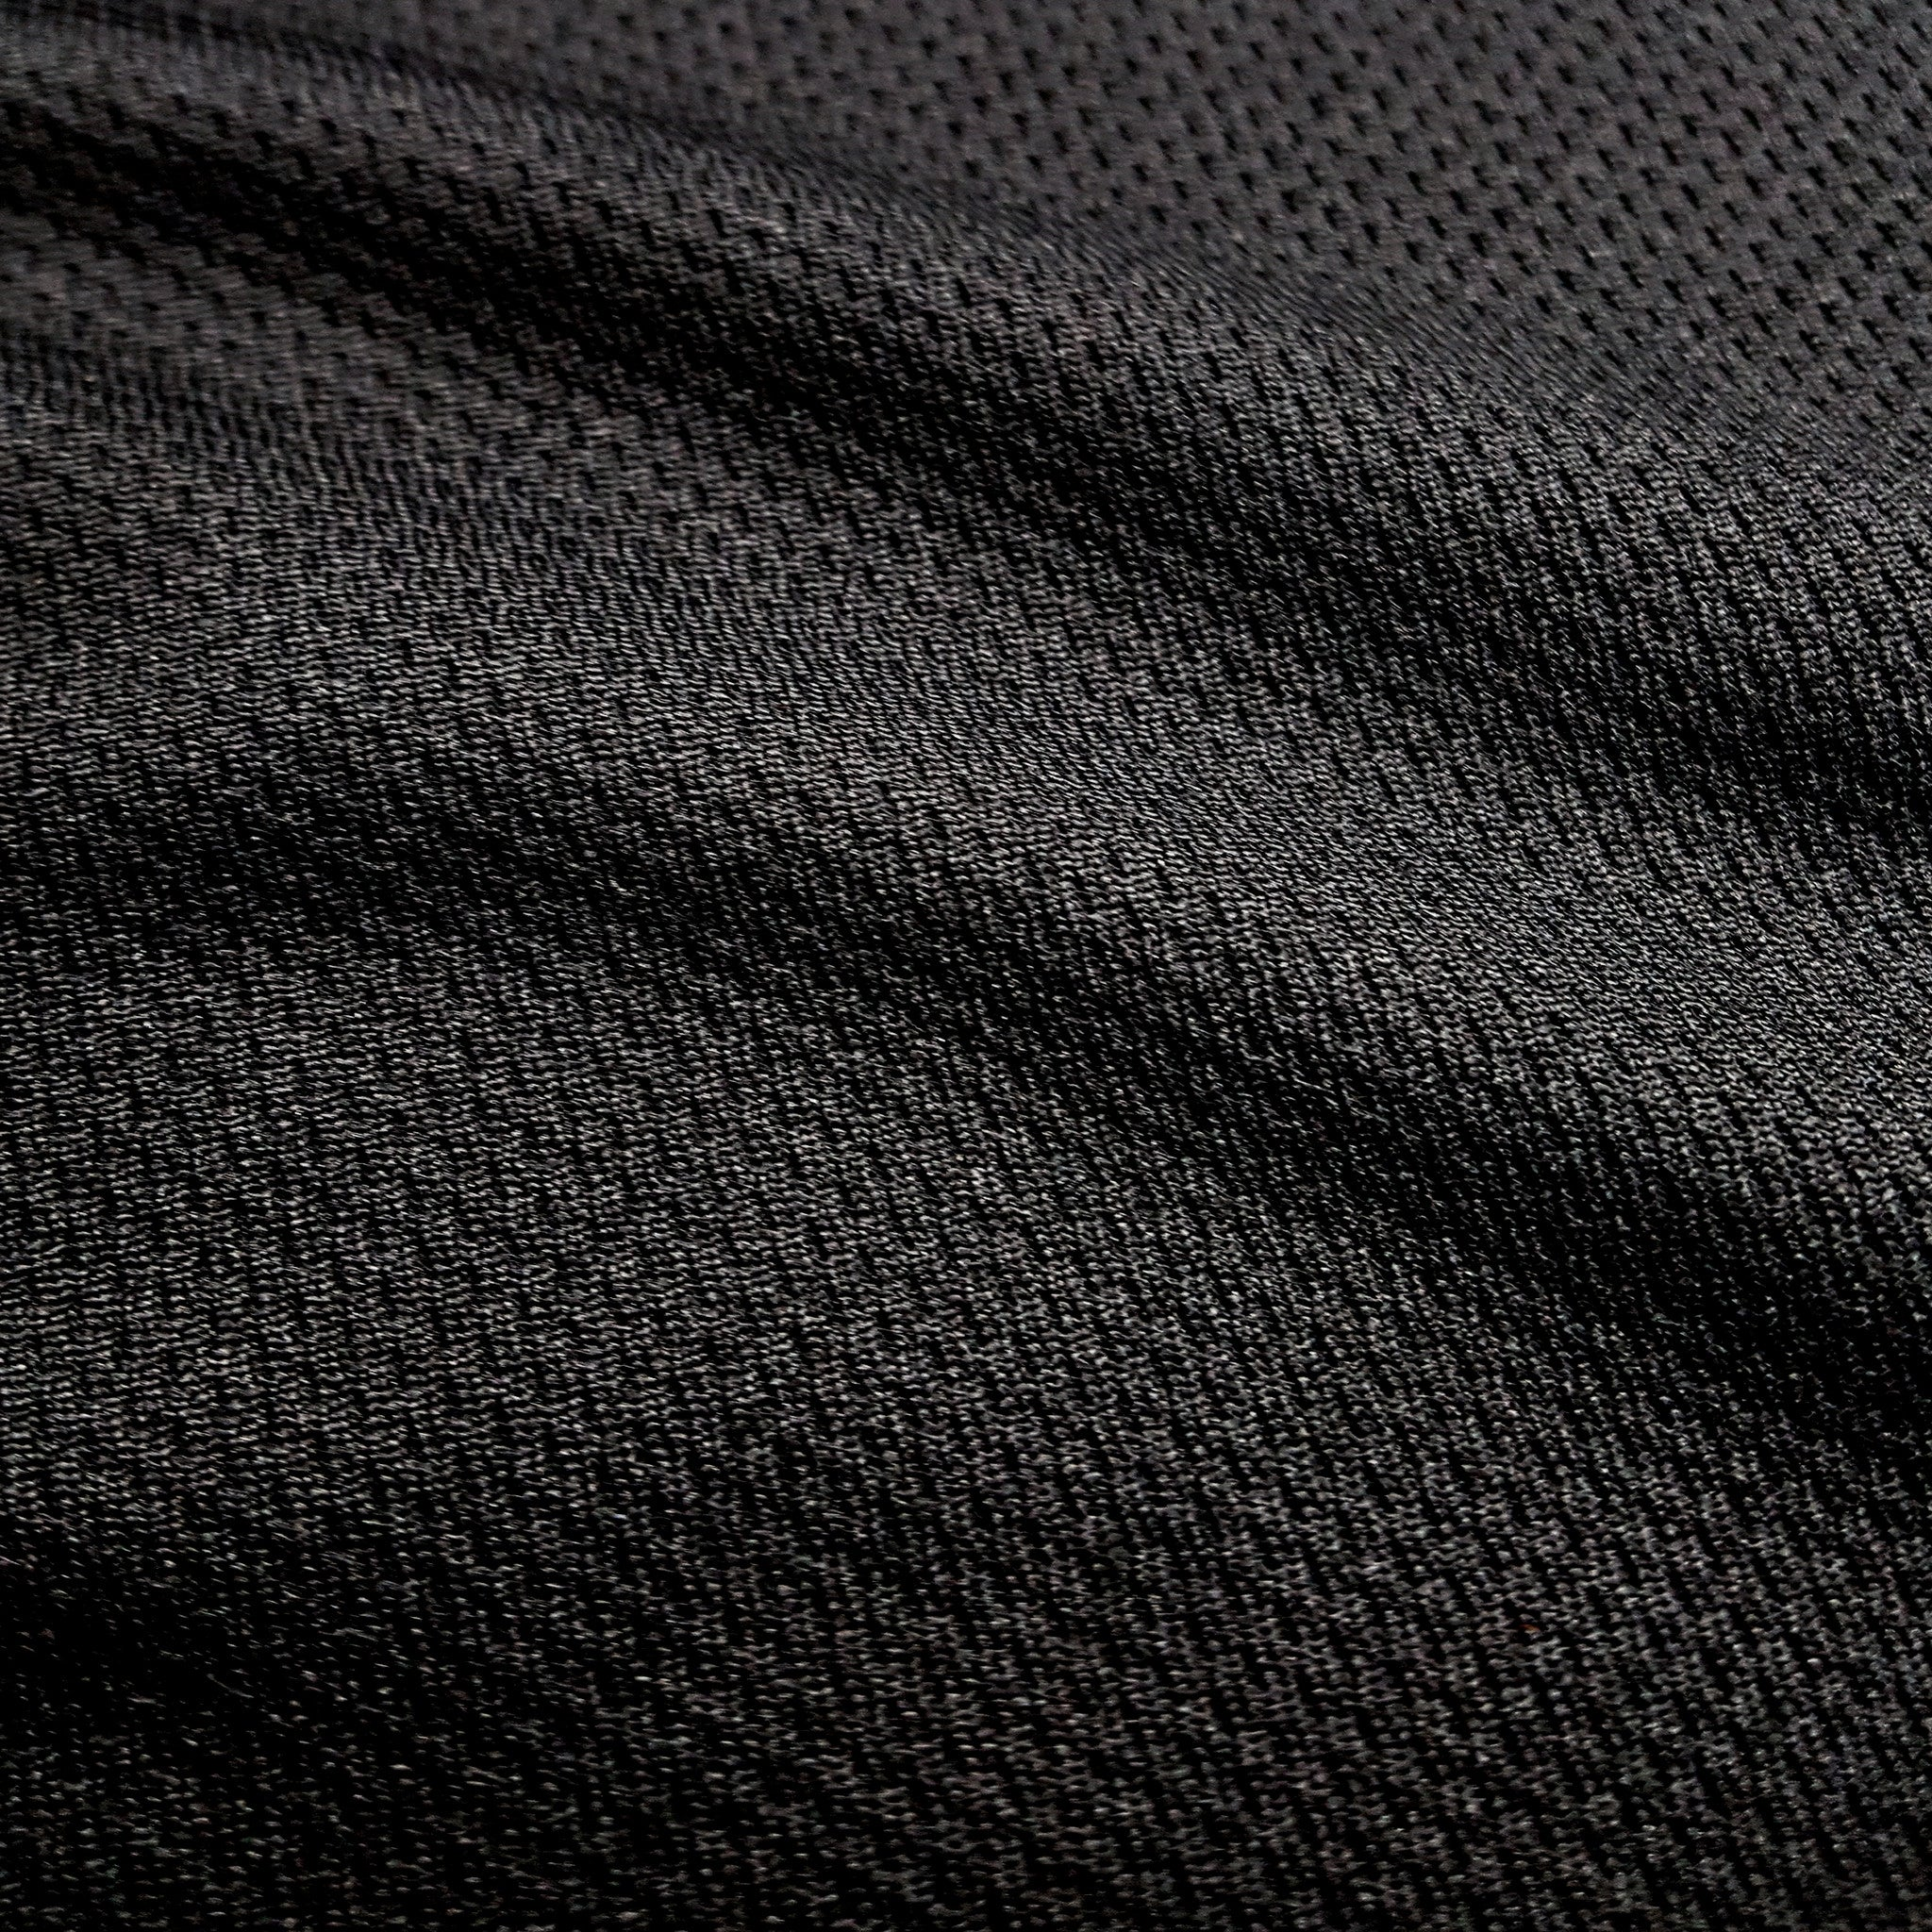 SportyFish Black Series black t-shirt: Mahi-mahi close-up view 2